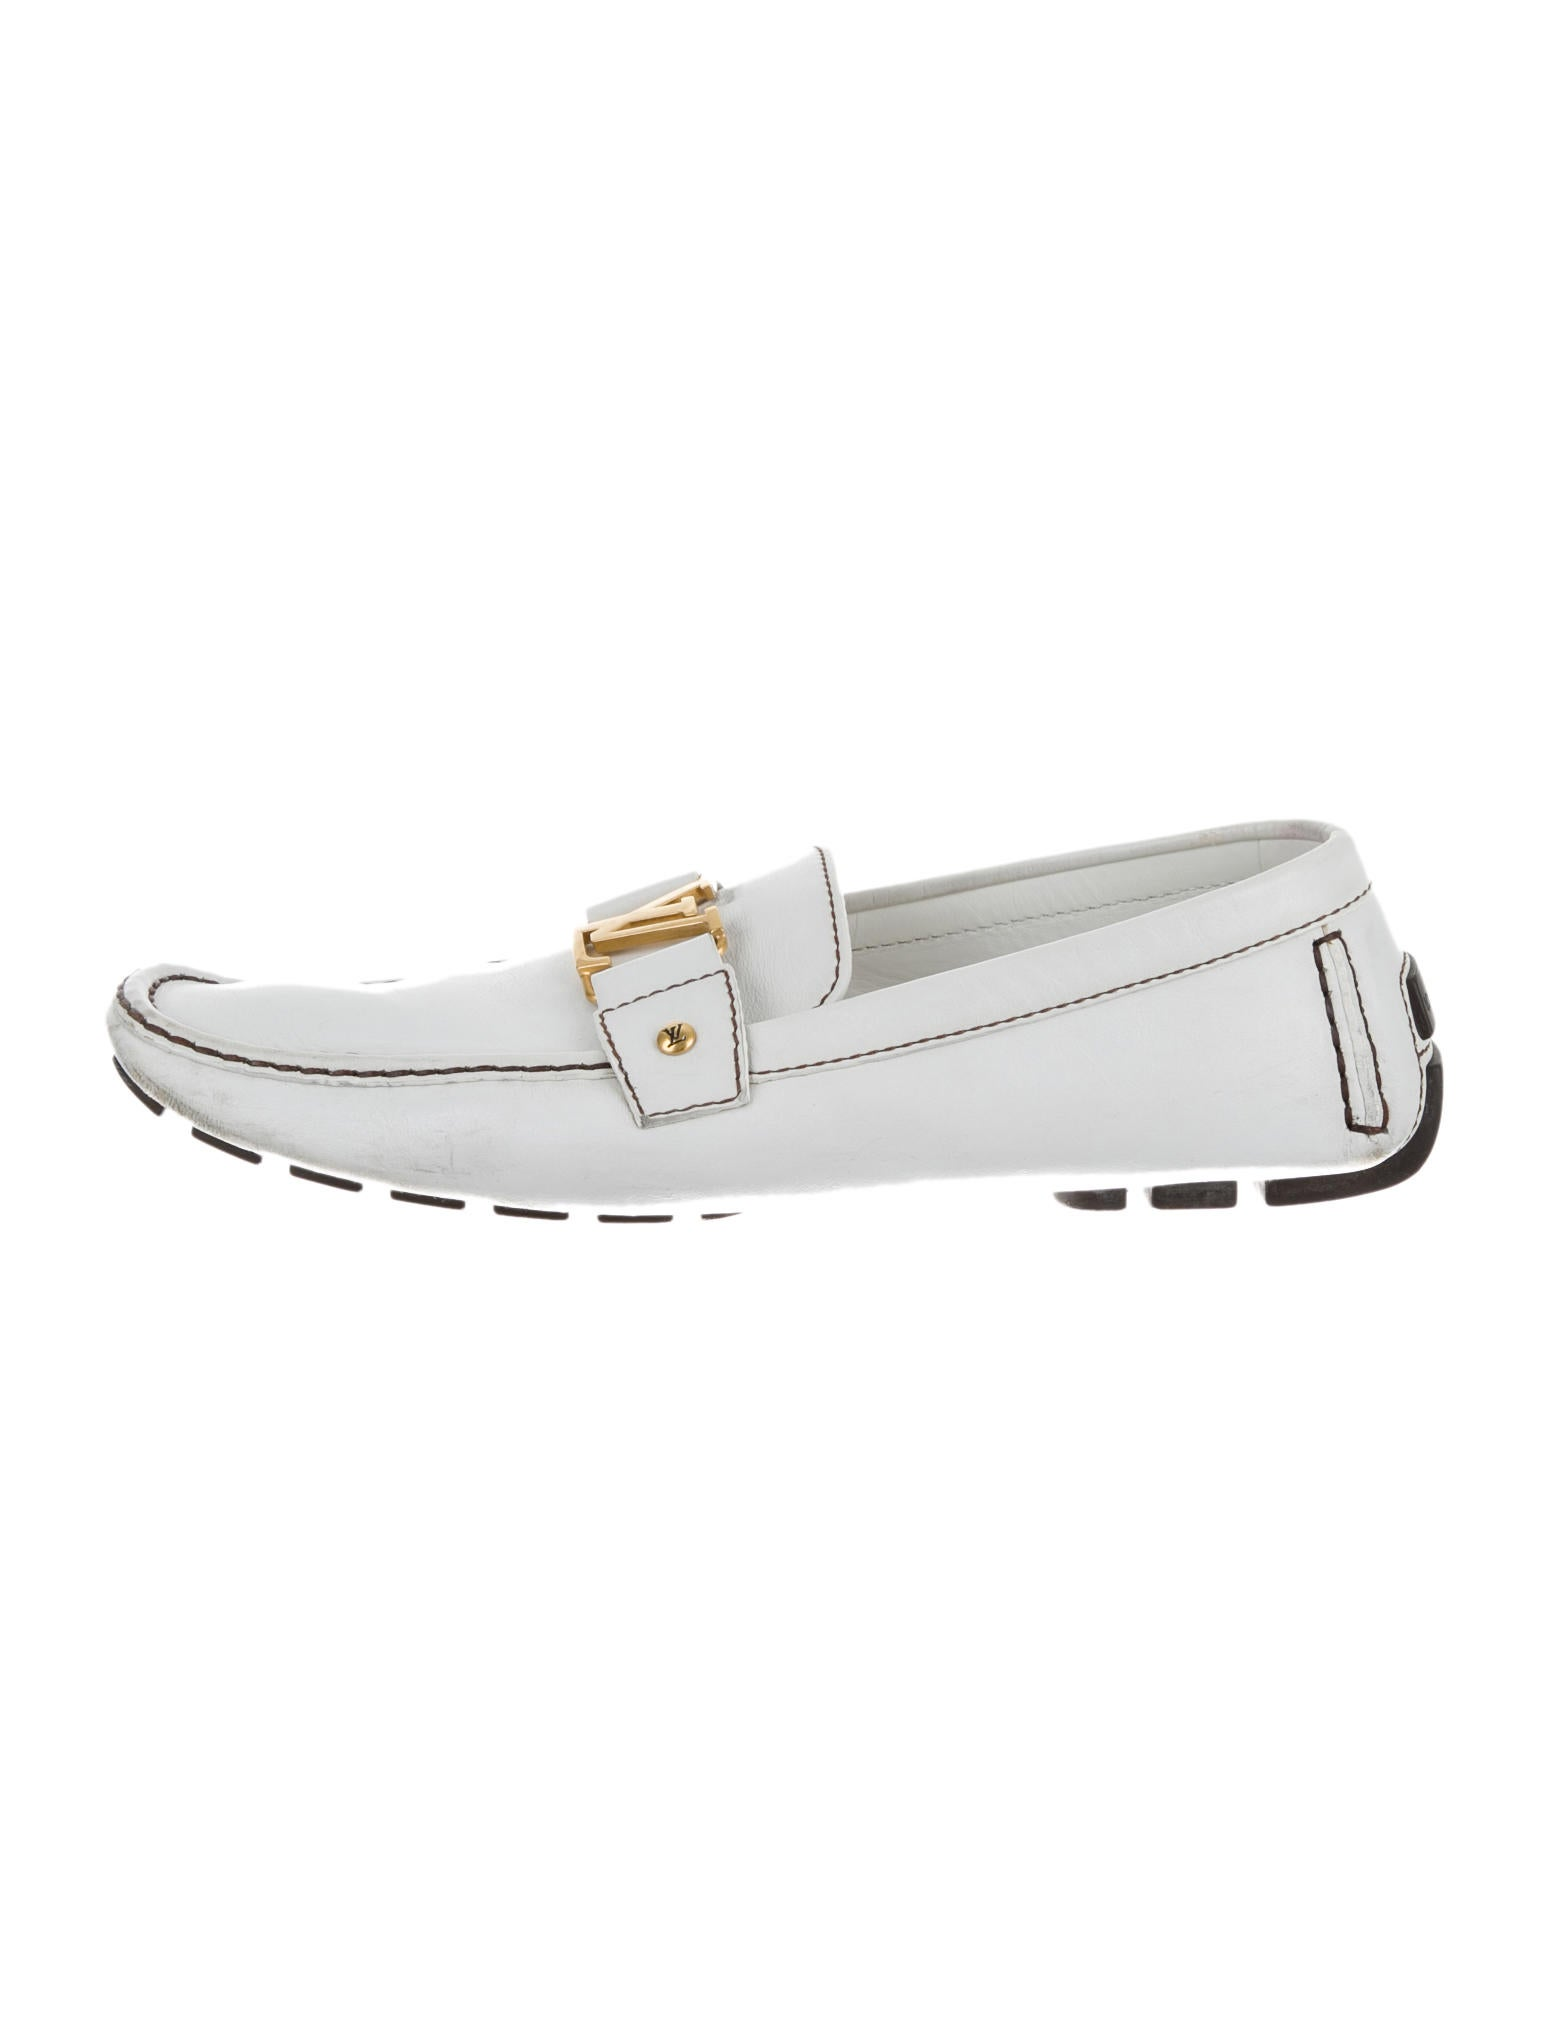 louboutin men's shoes - Louis Vuitton Loafers - Mens Shoes - LOU50177   The RealReal